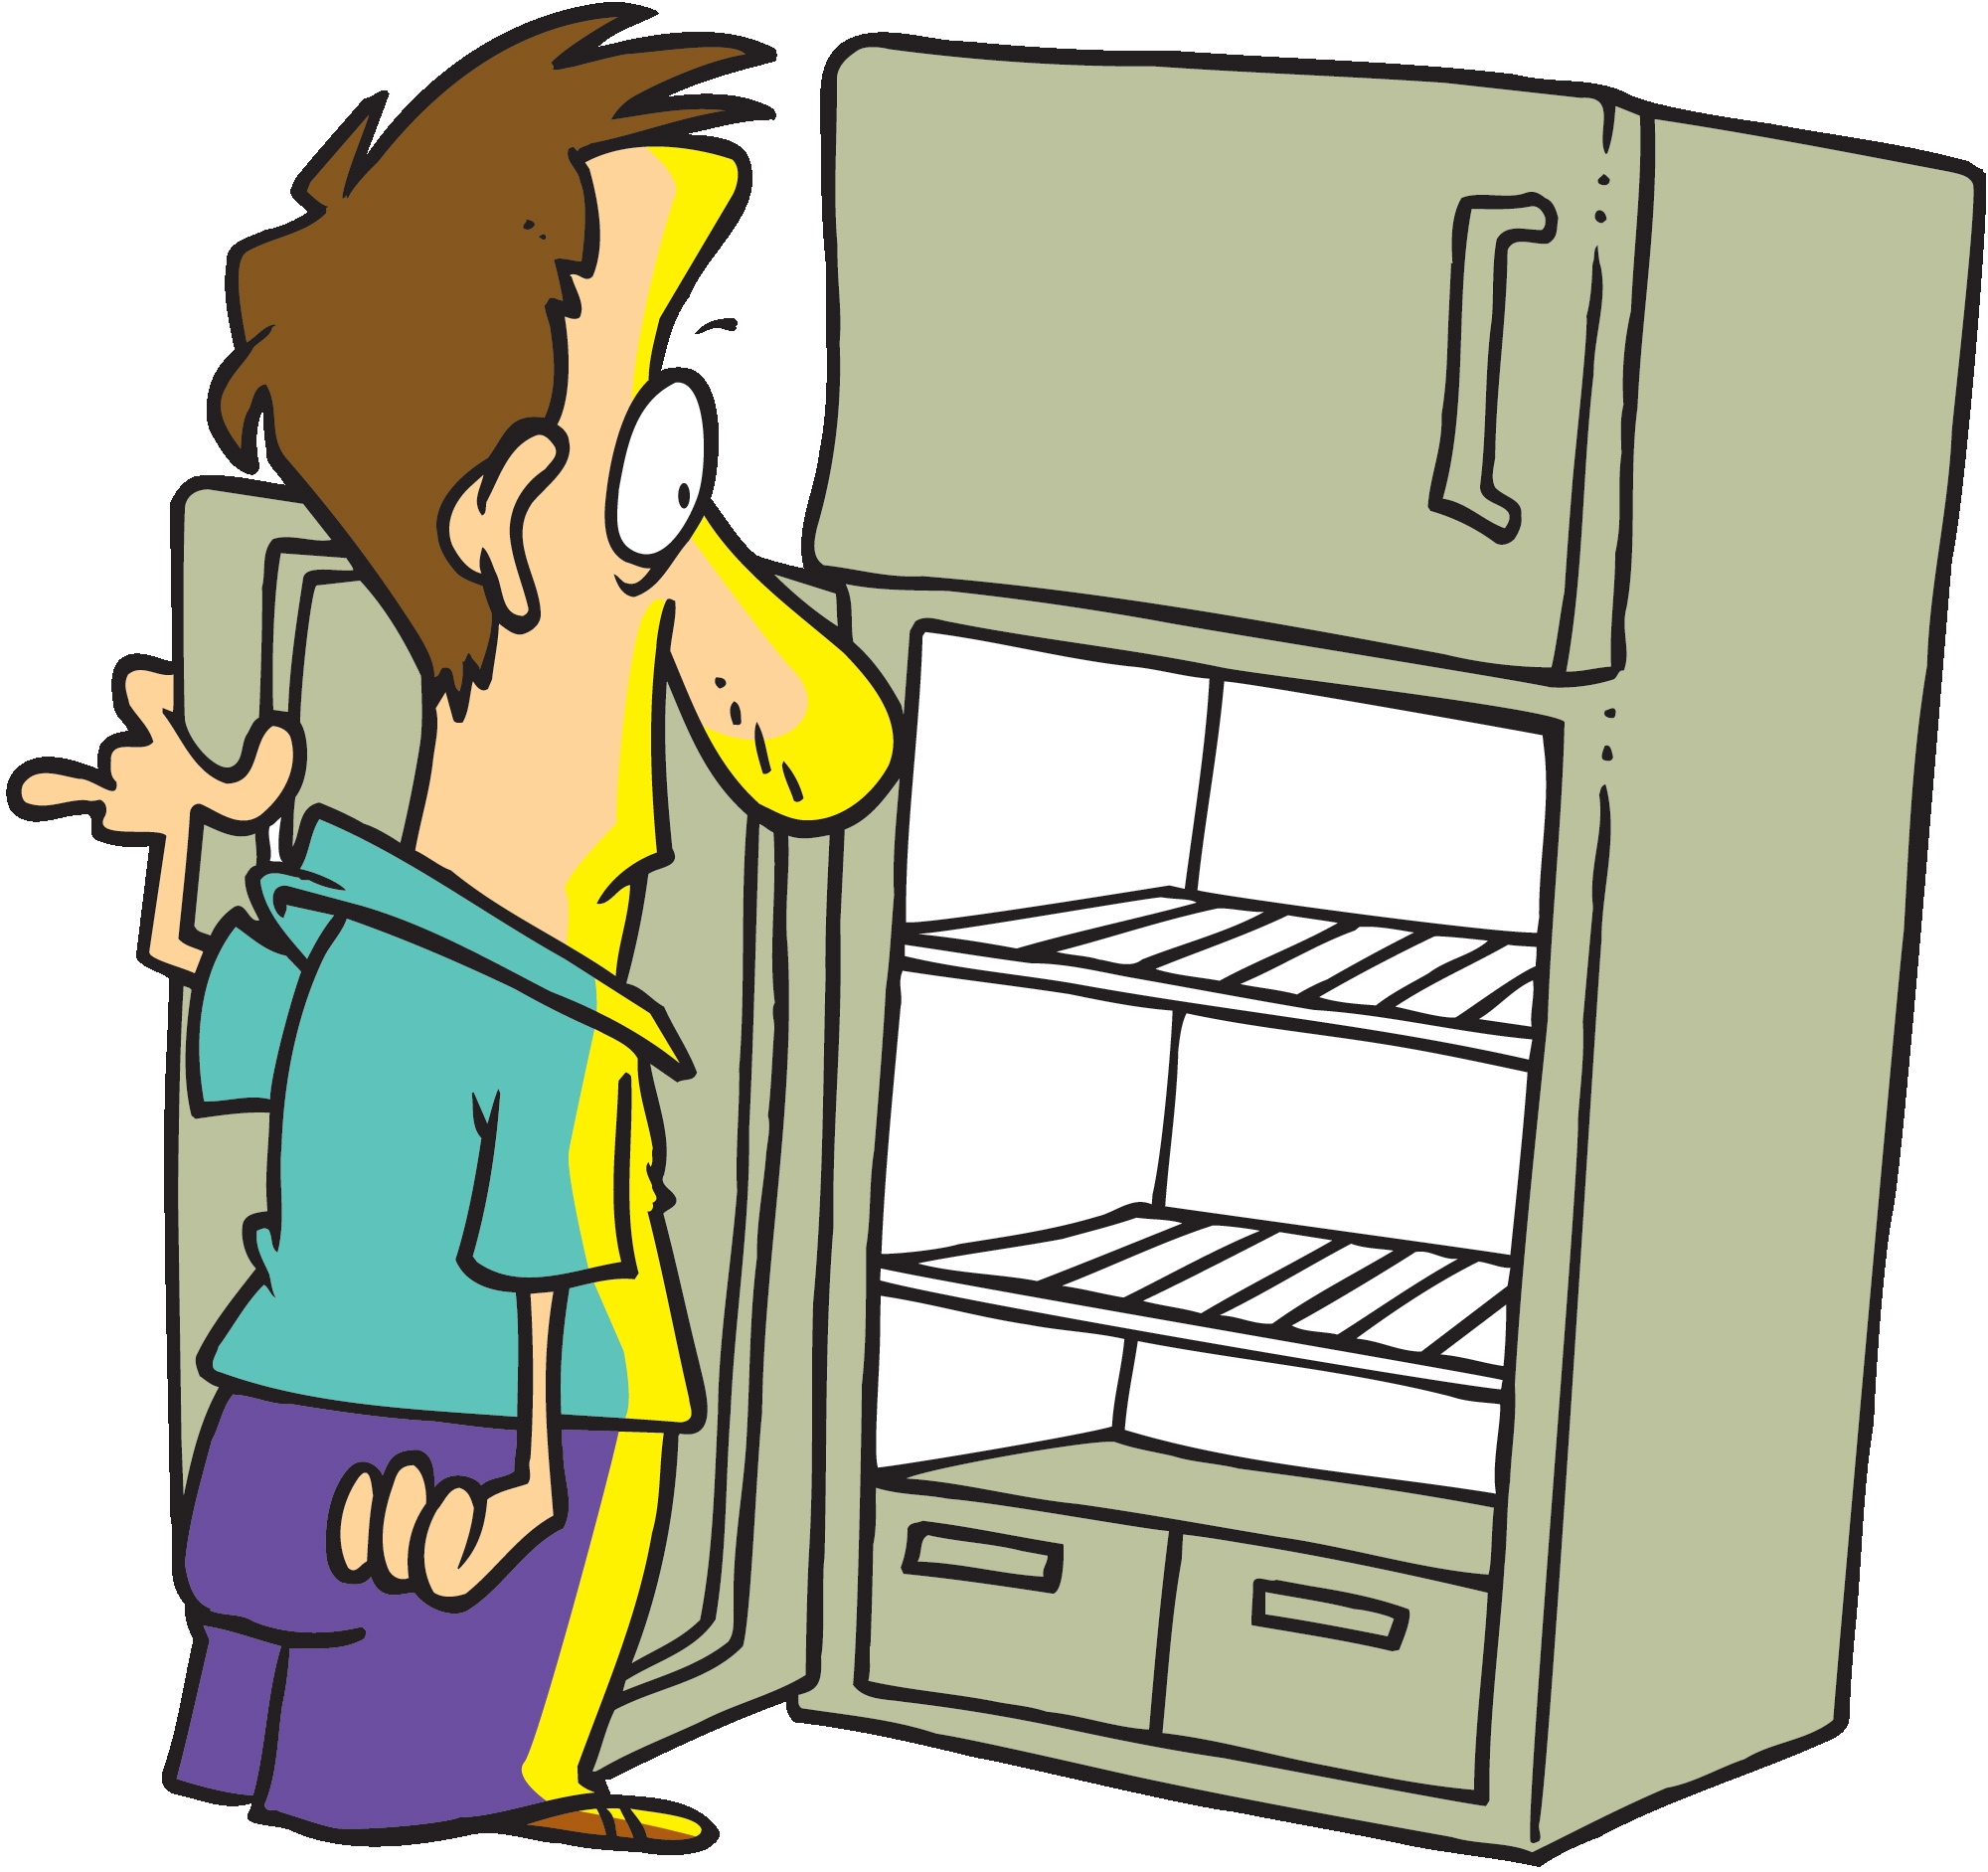 House inside clipart empty picture free library fridge Refrigerator open cliparts free download clip art jpg ... picture free library